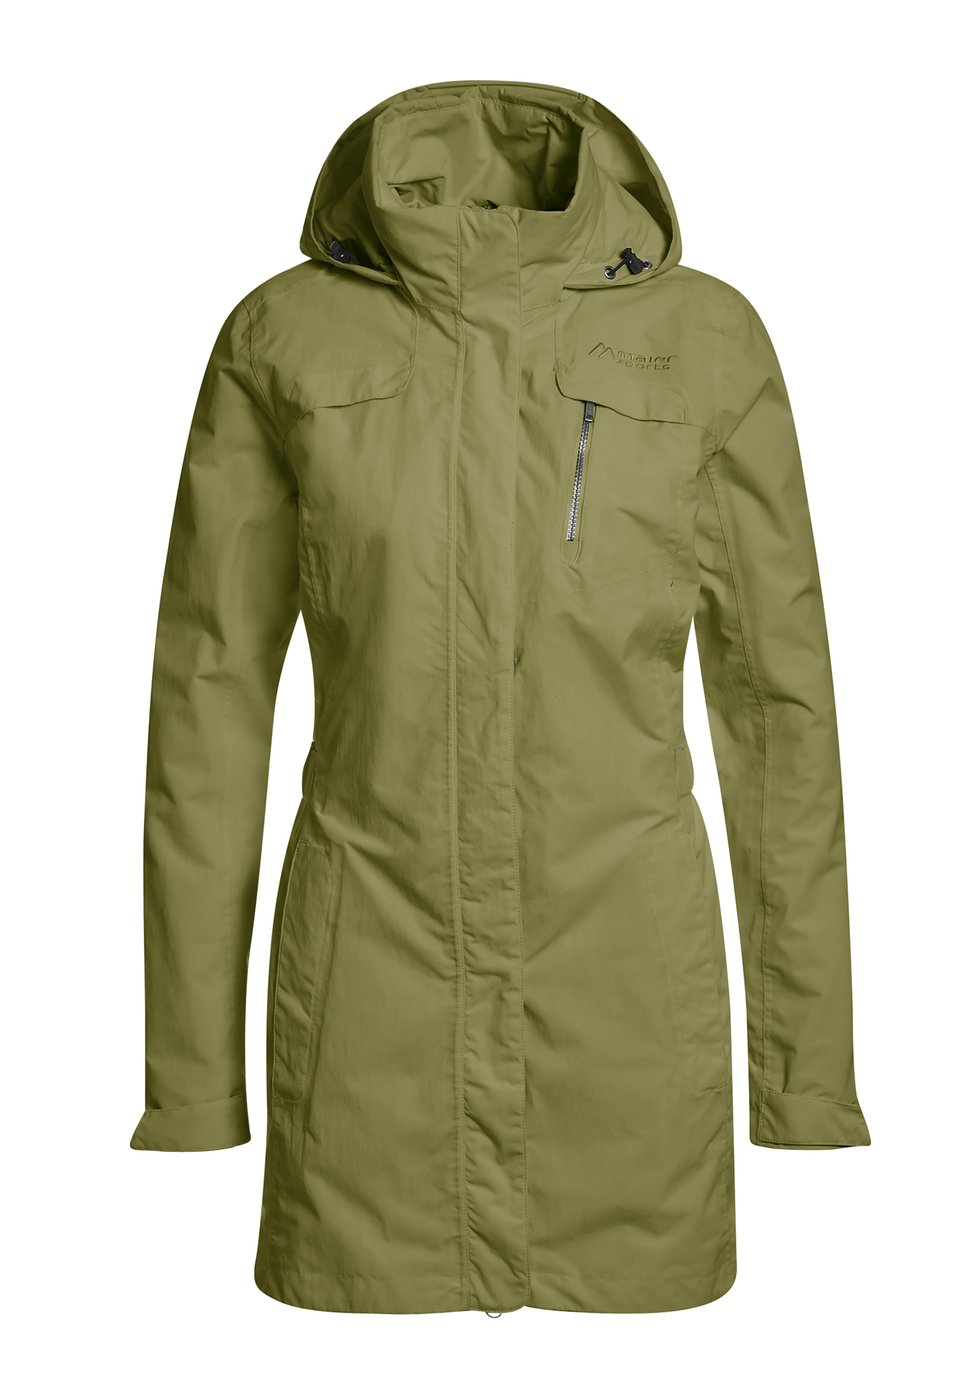 Maier Sports Damen Funktionsjacke Beaumaris - capulet olive - 46